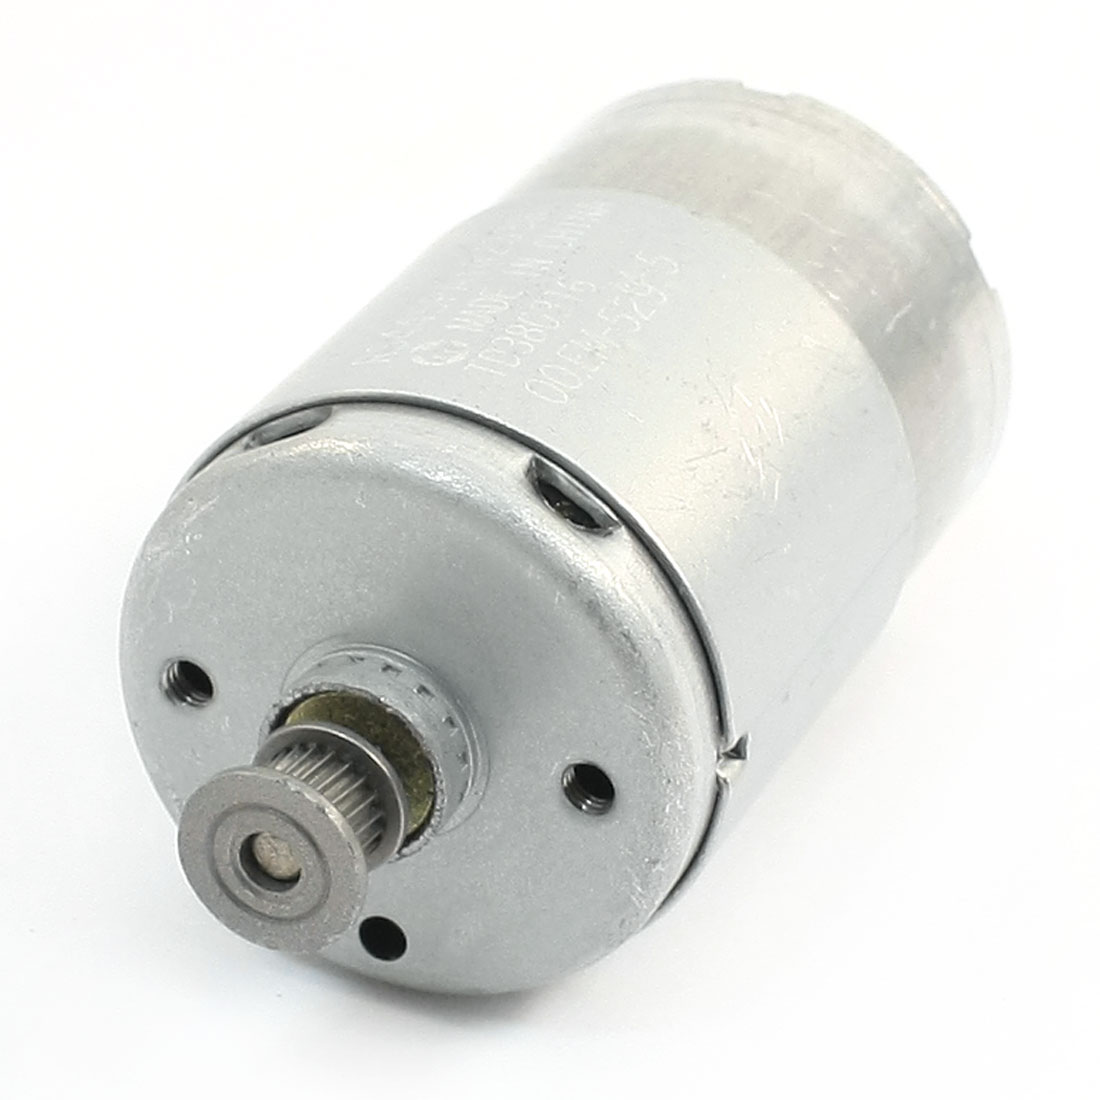 RS445PA DC 24V 3800RPM Output Speed 47 x 32mm DC Motor w Pulley